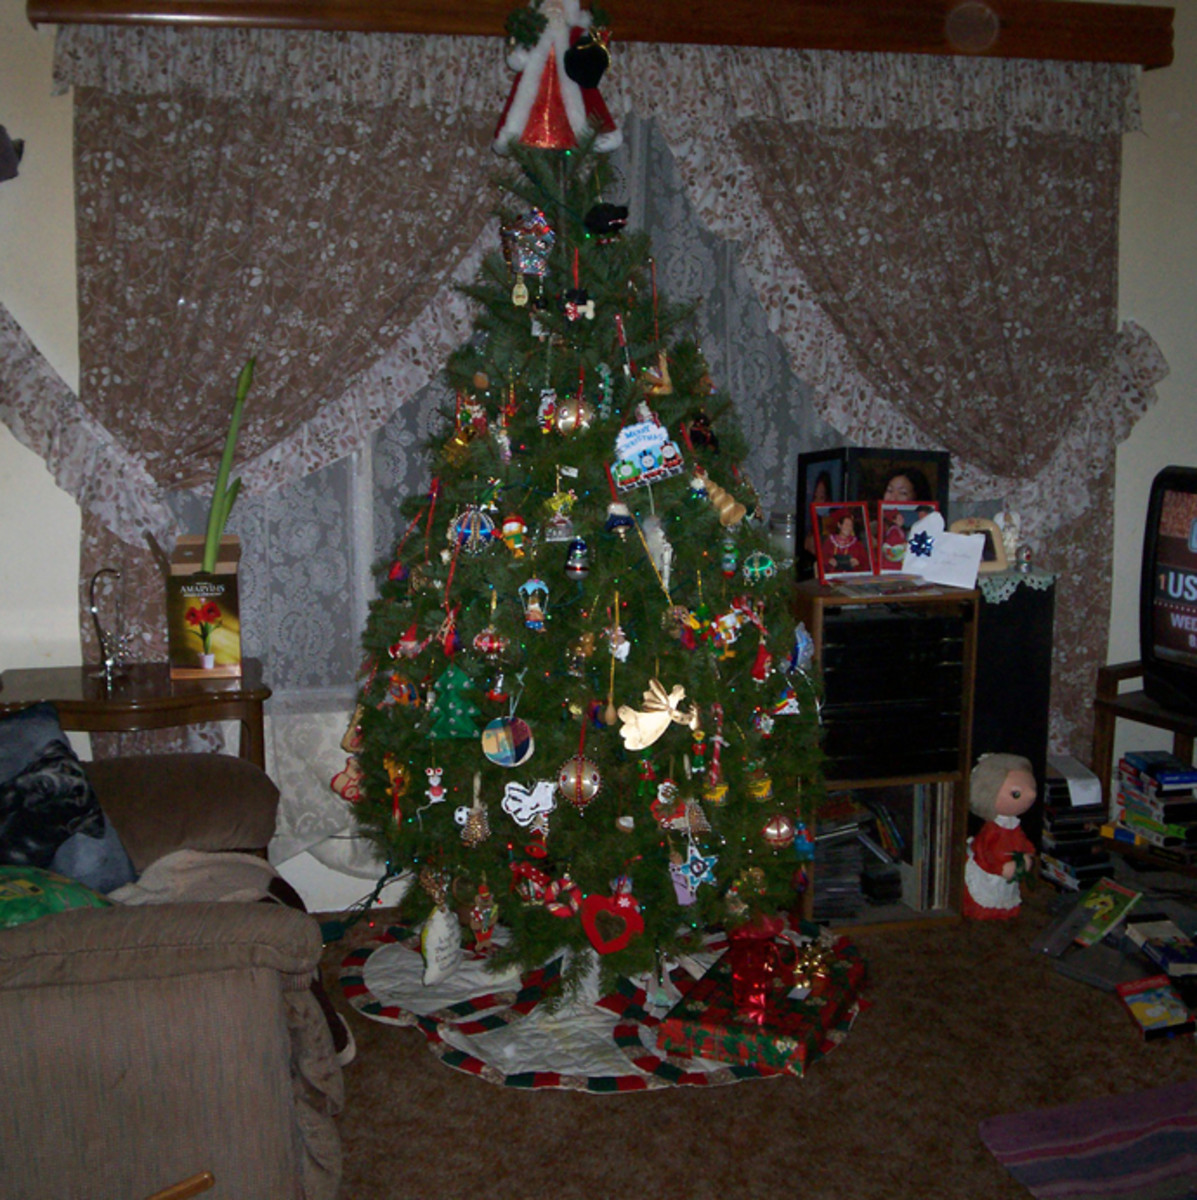 My family's humble Christmas tree